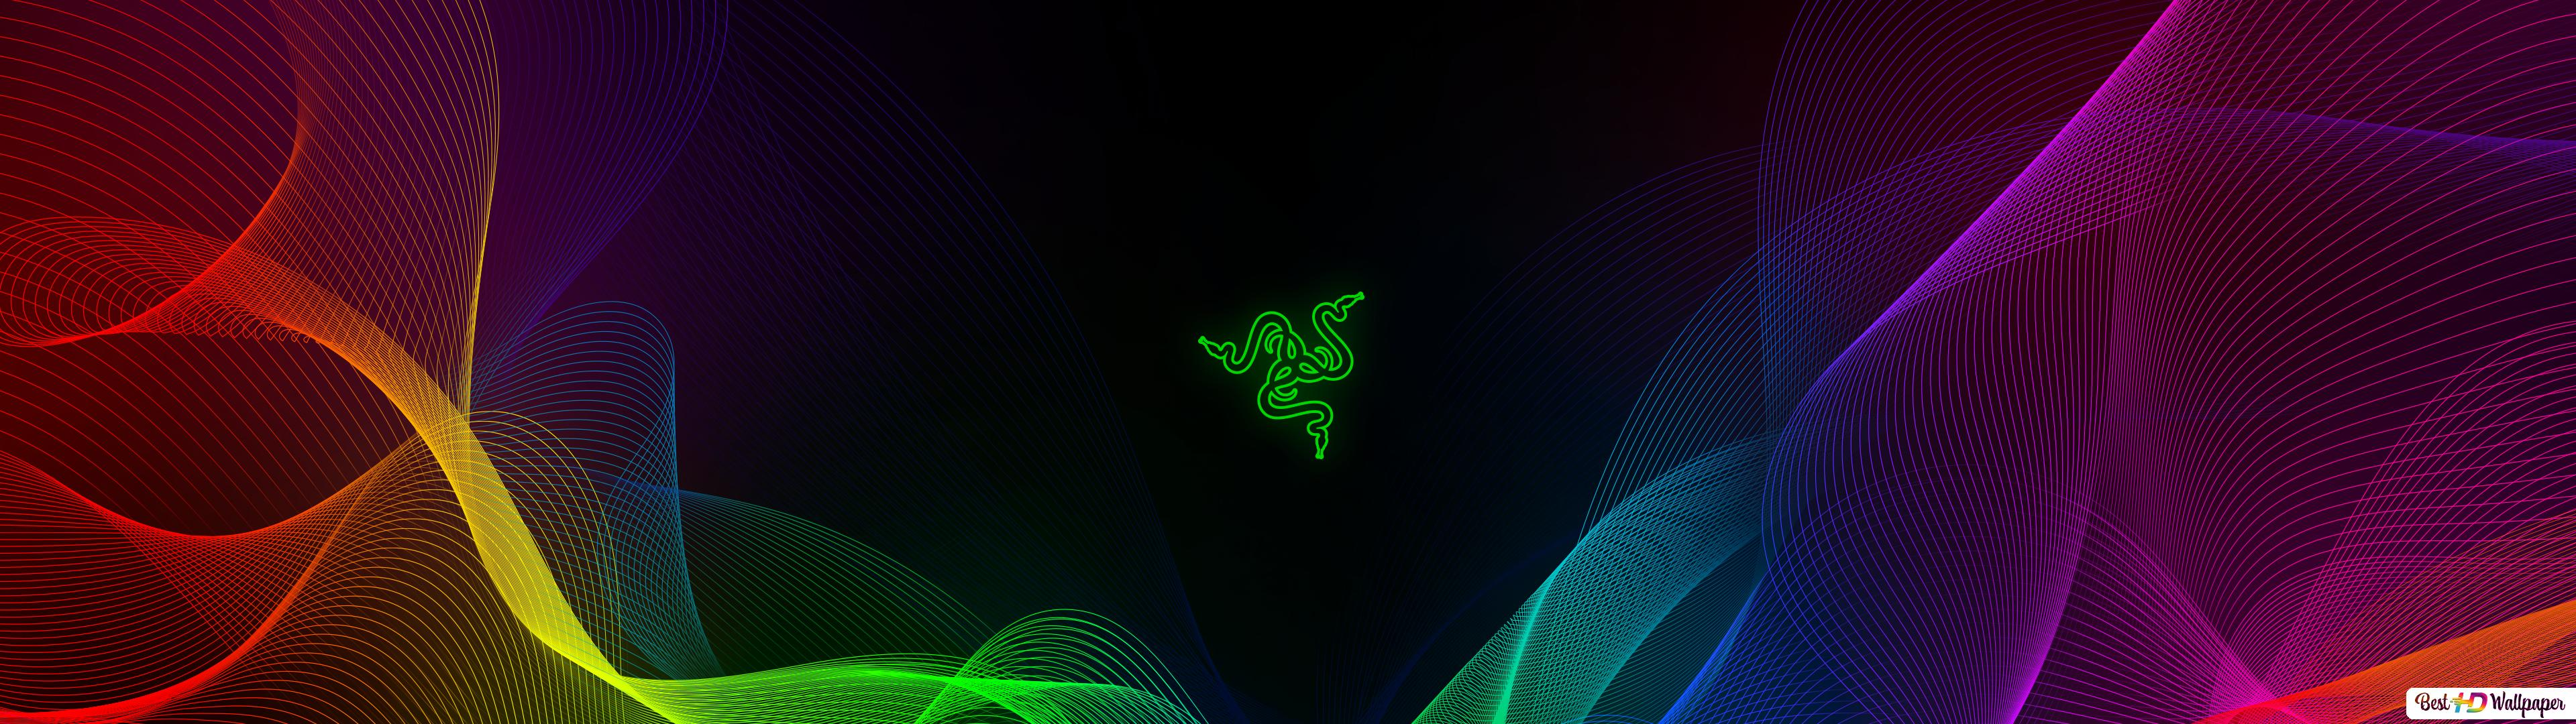 Razer Inc Gaming Hardware Hd Wallpaper Download